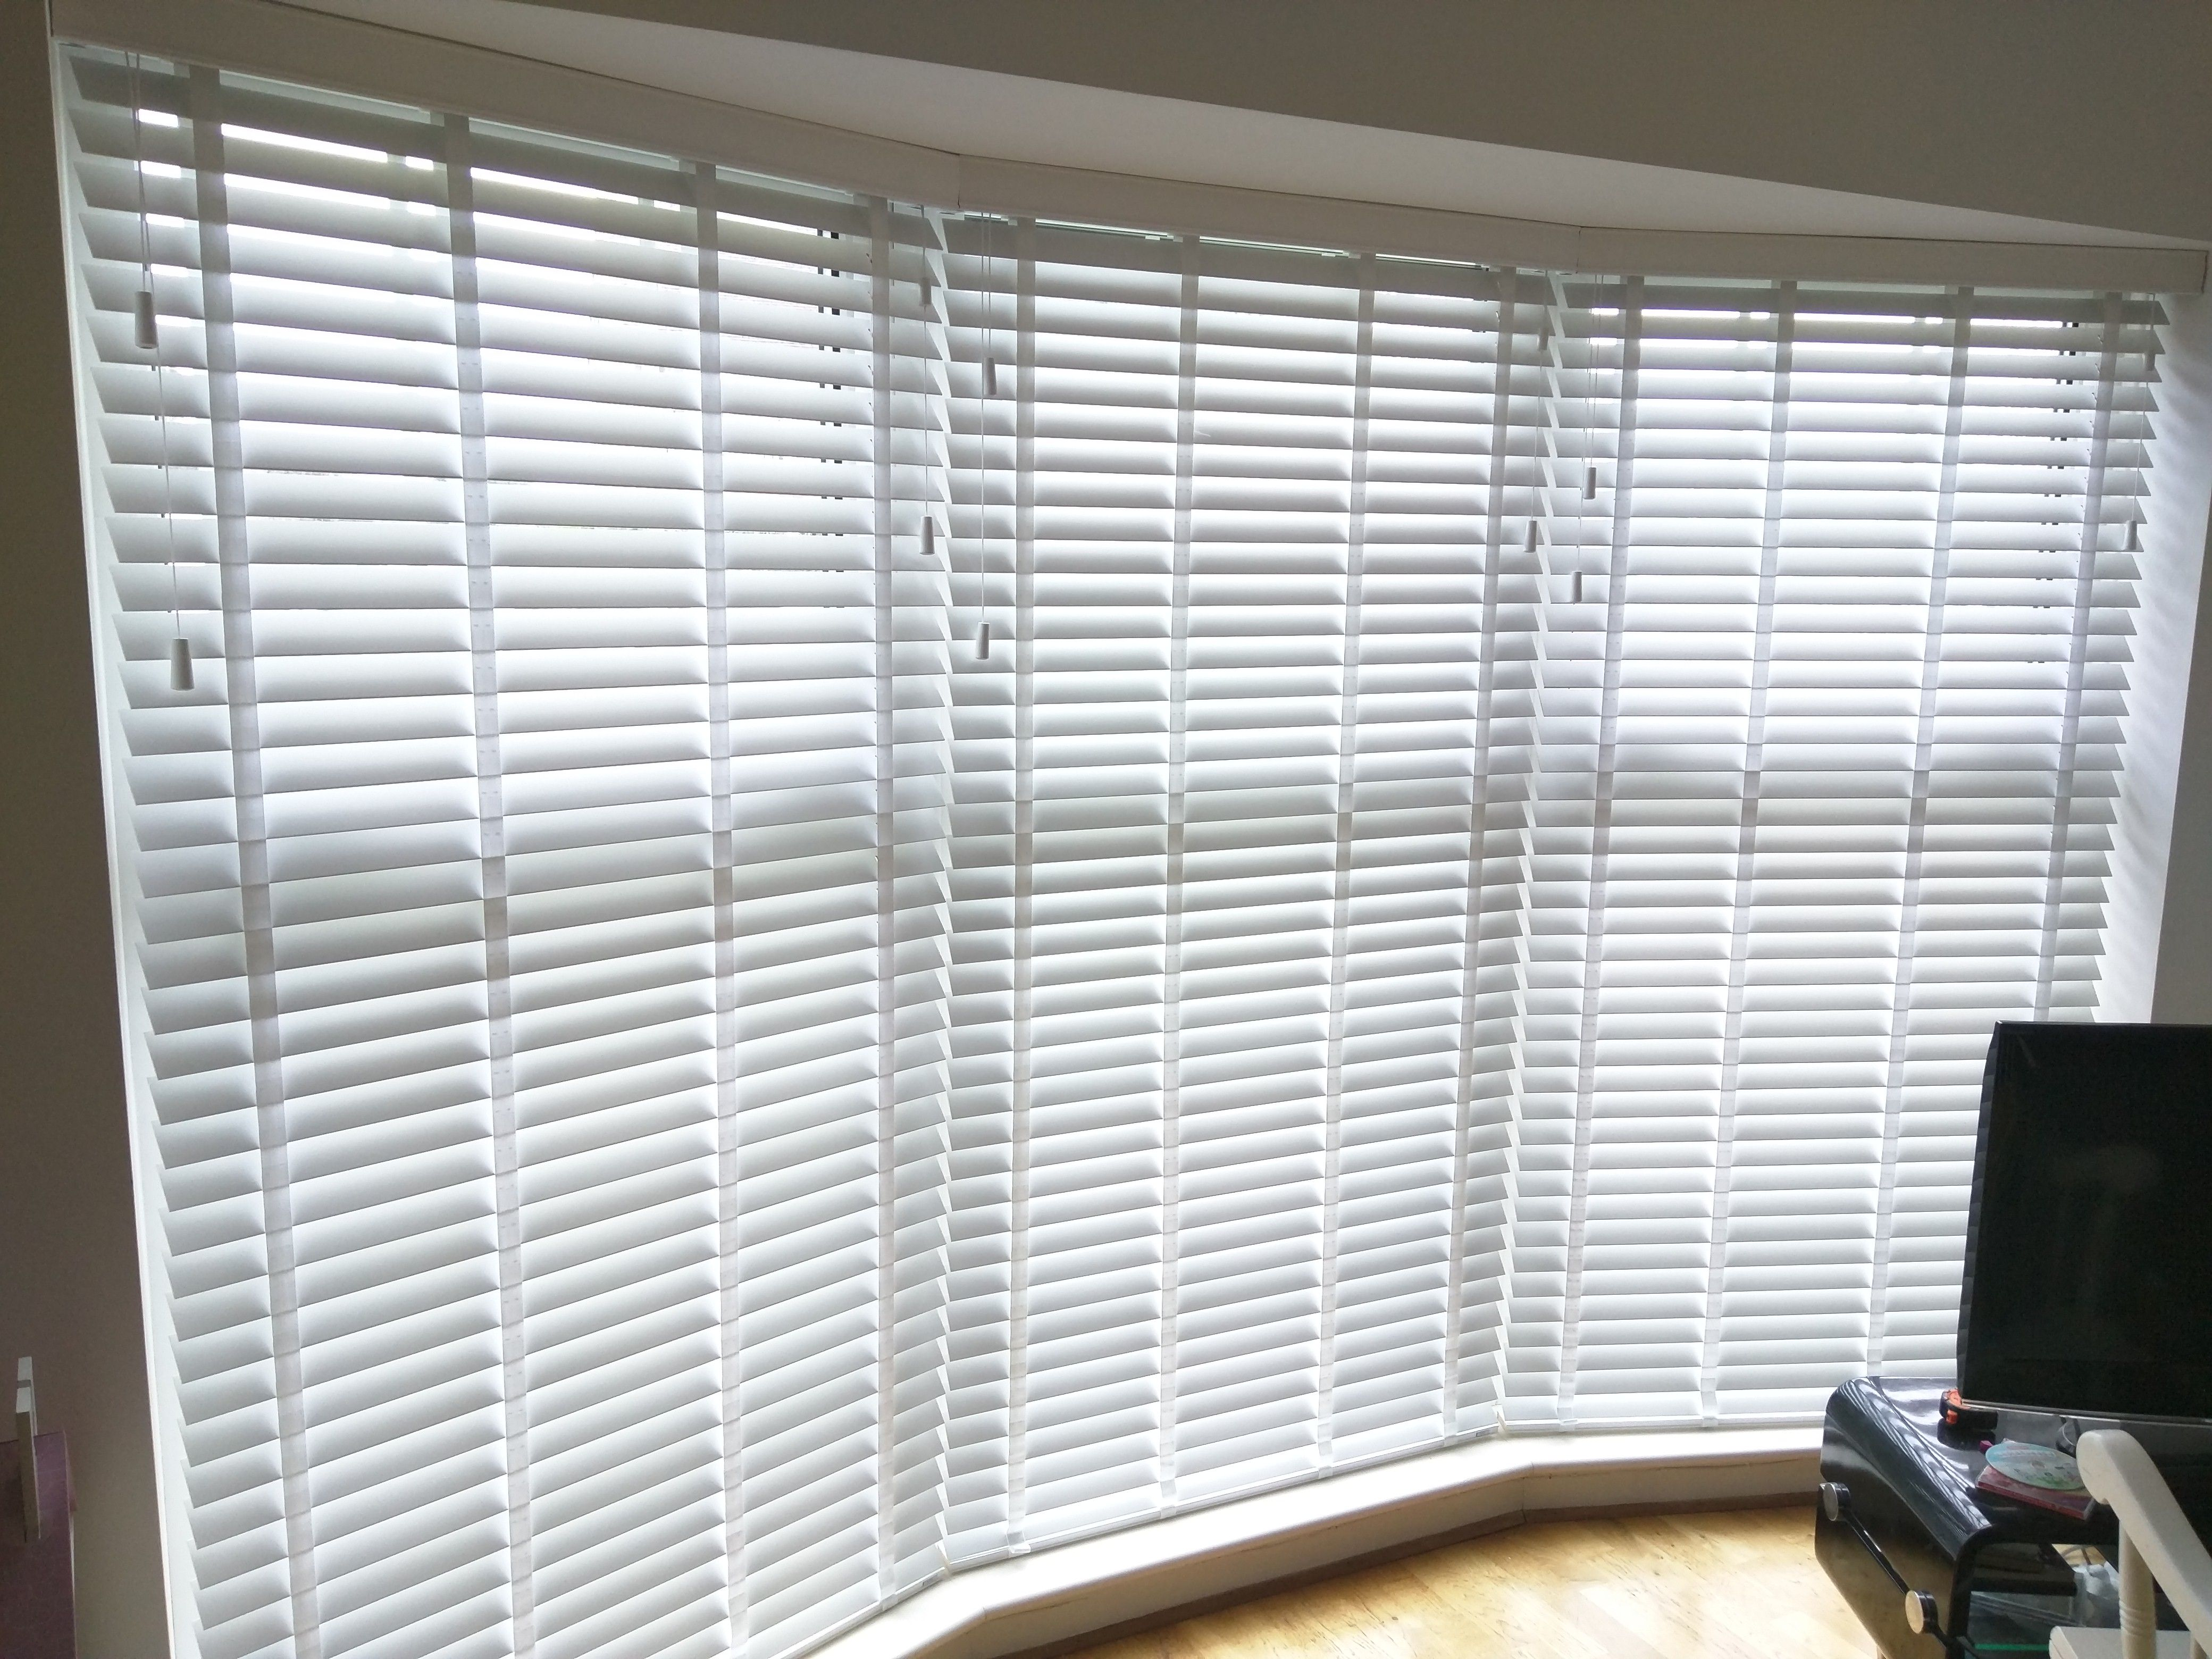 Wood Venetian Blinds With Tapes Bay Window Shoreham Living Room Blinds Made To Measure Blinds Wooden Blinds Living Room Blinds